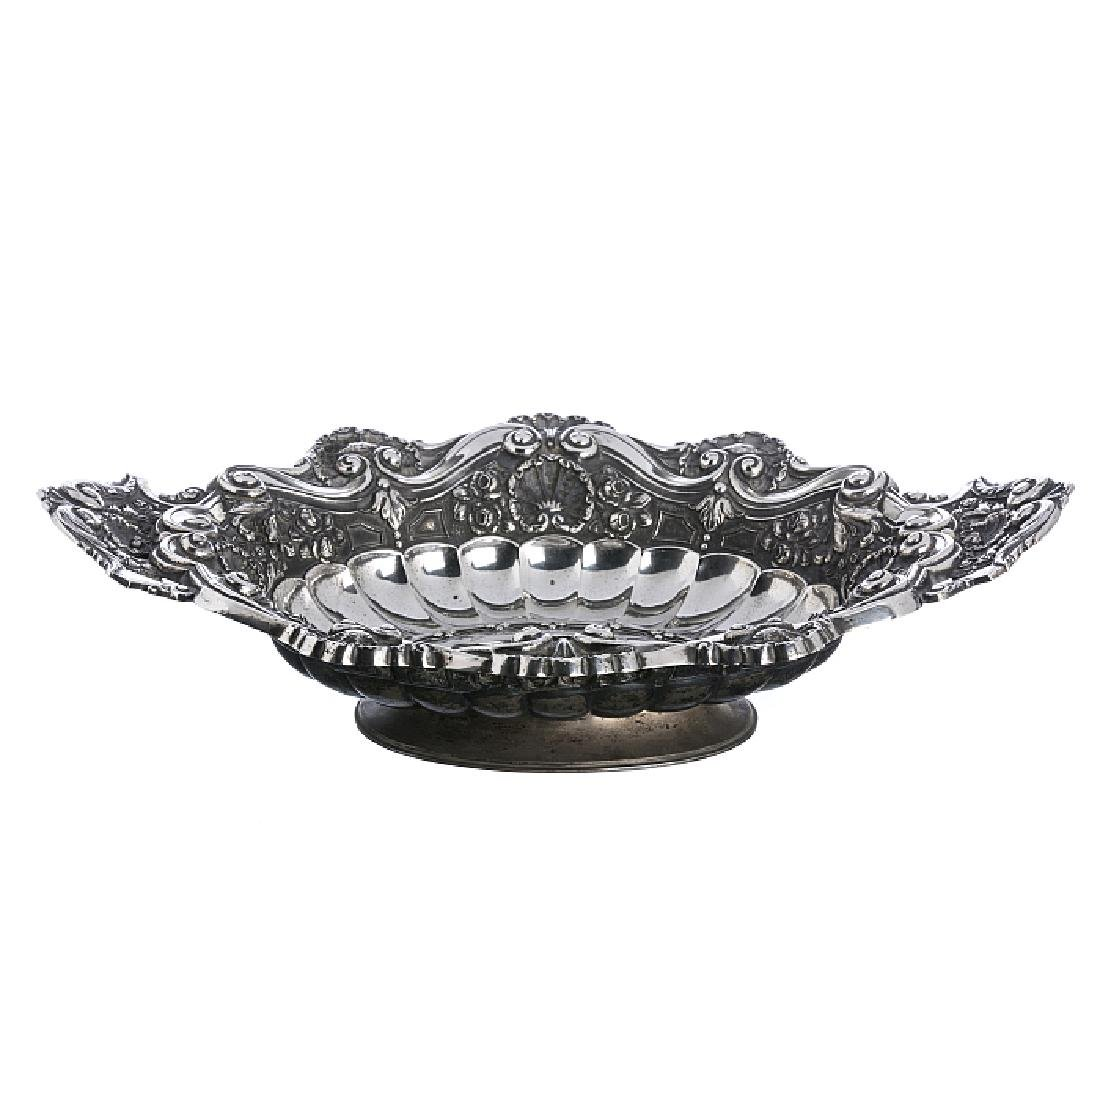 Centrepiece in silver, D. JoAo V style